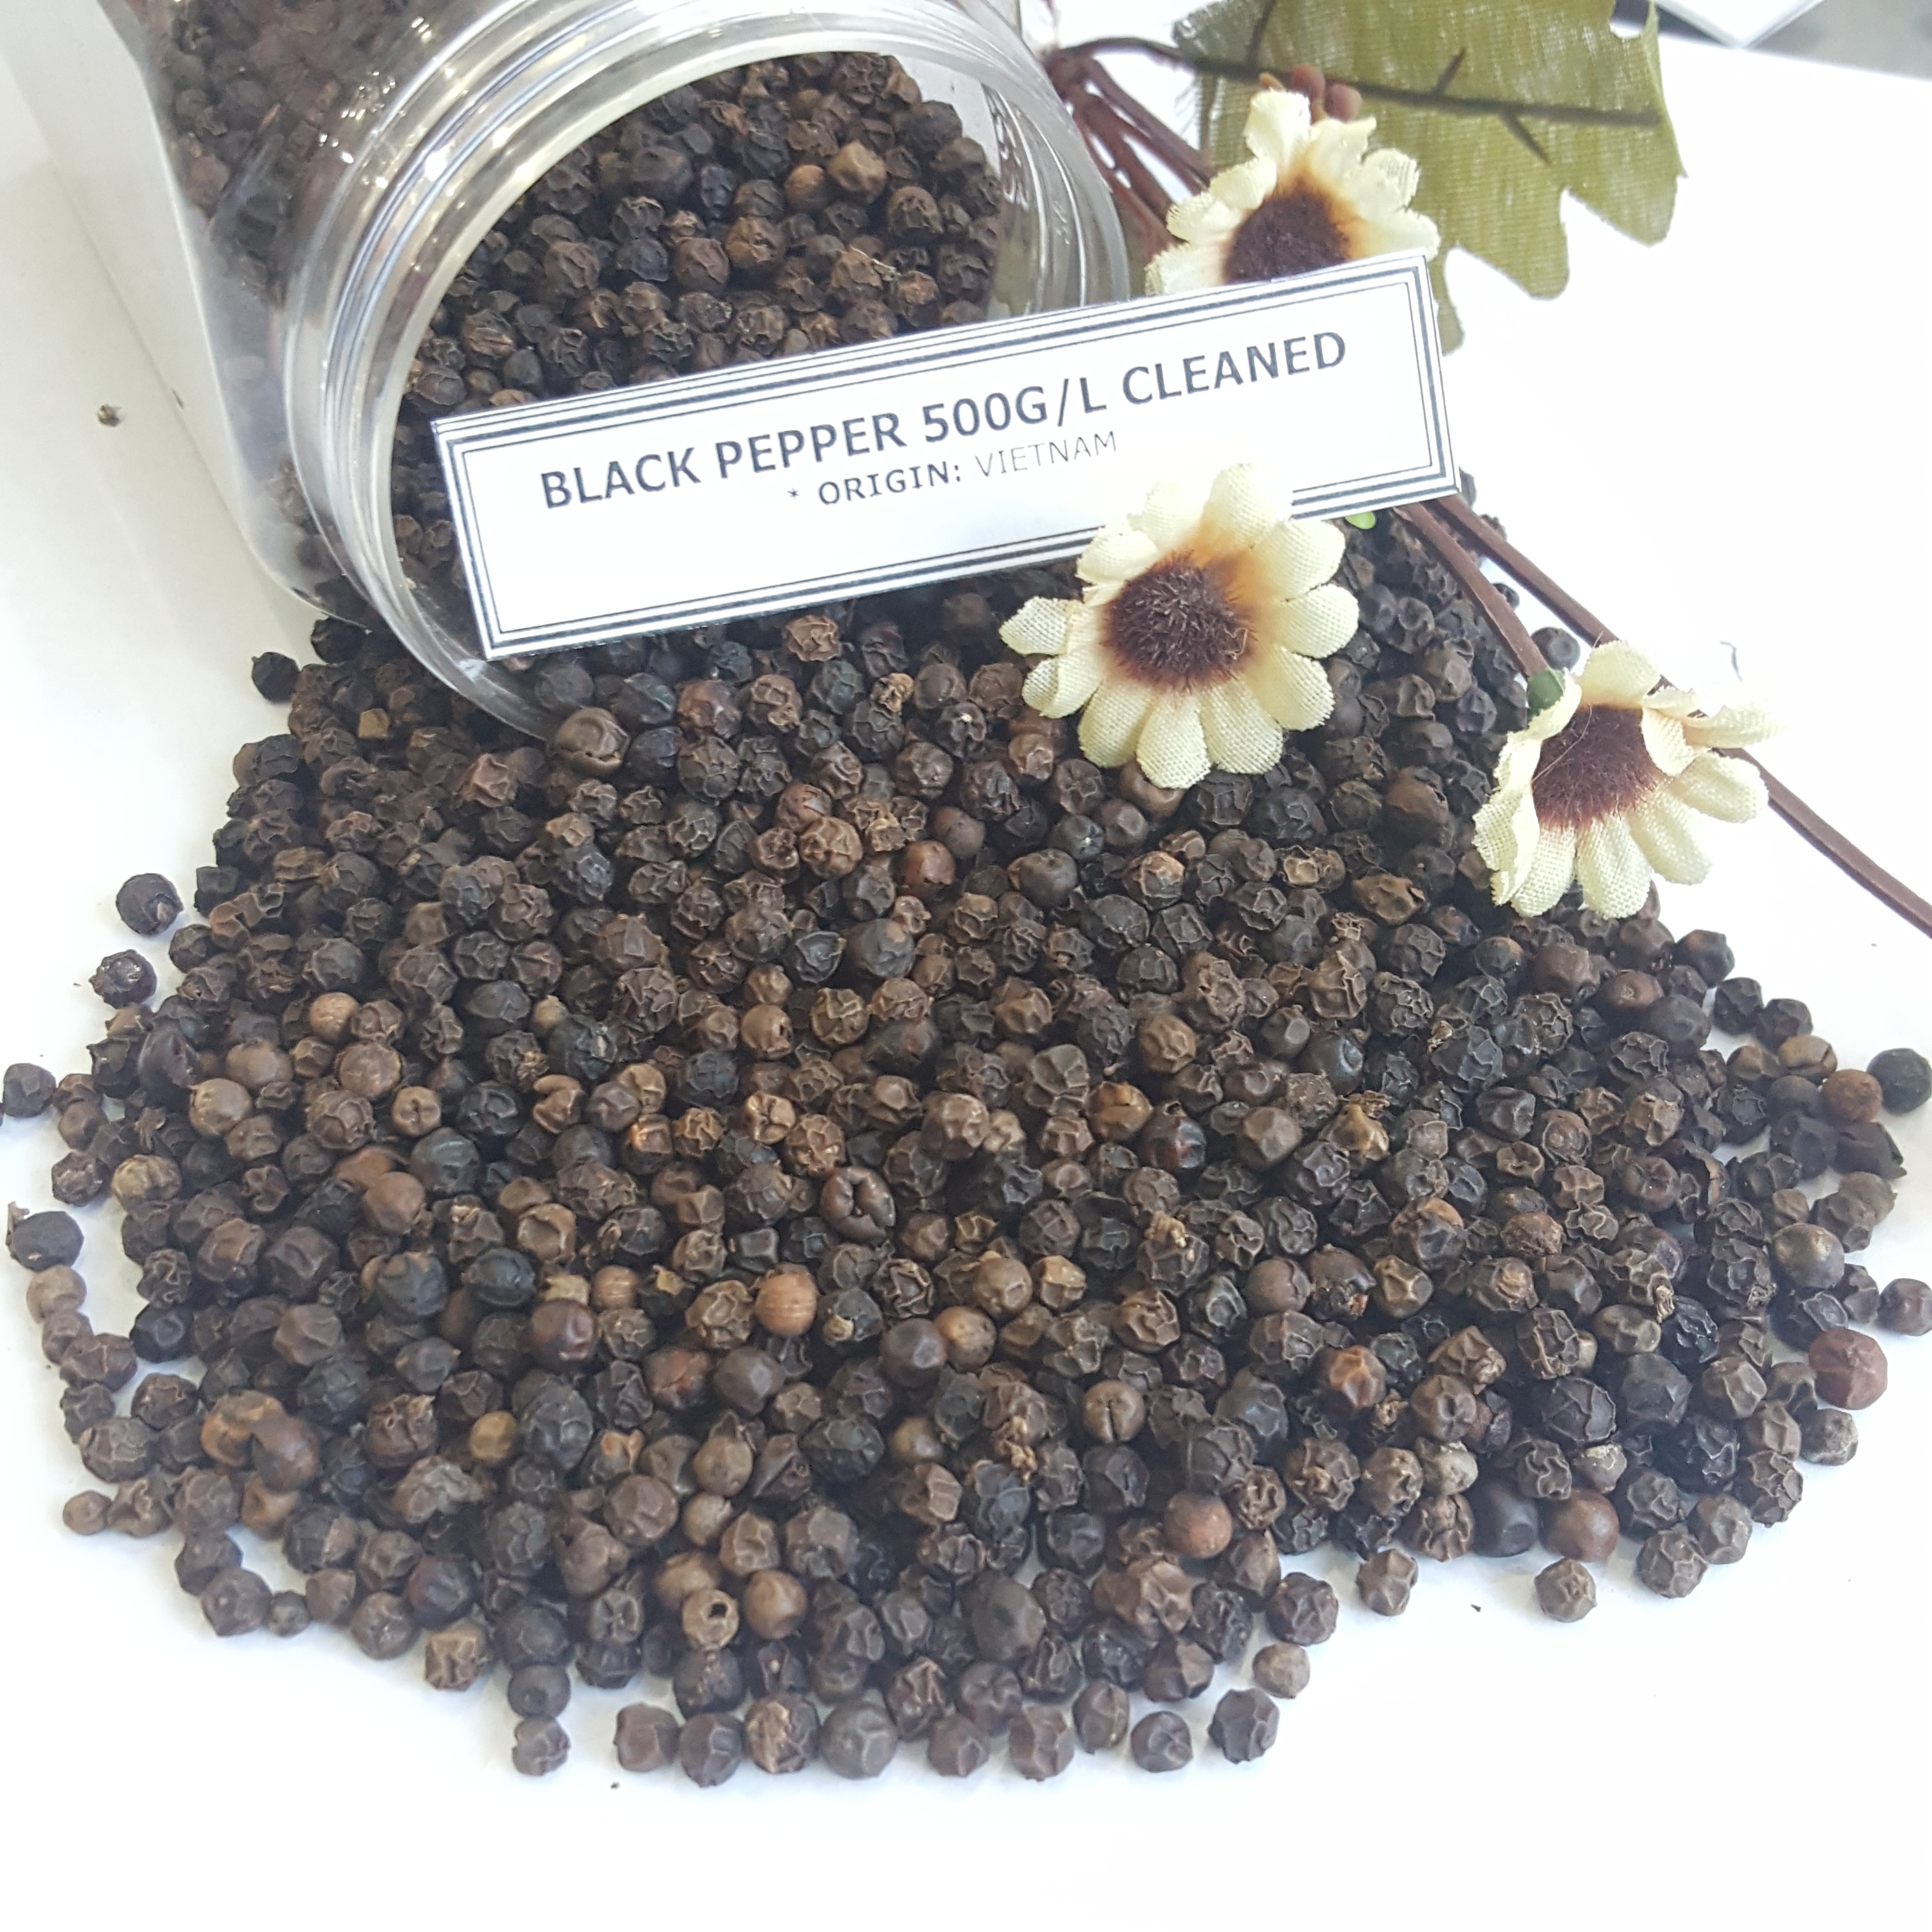 Whole Black pepper, white pepper BIG QUANTITY FOR SALES